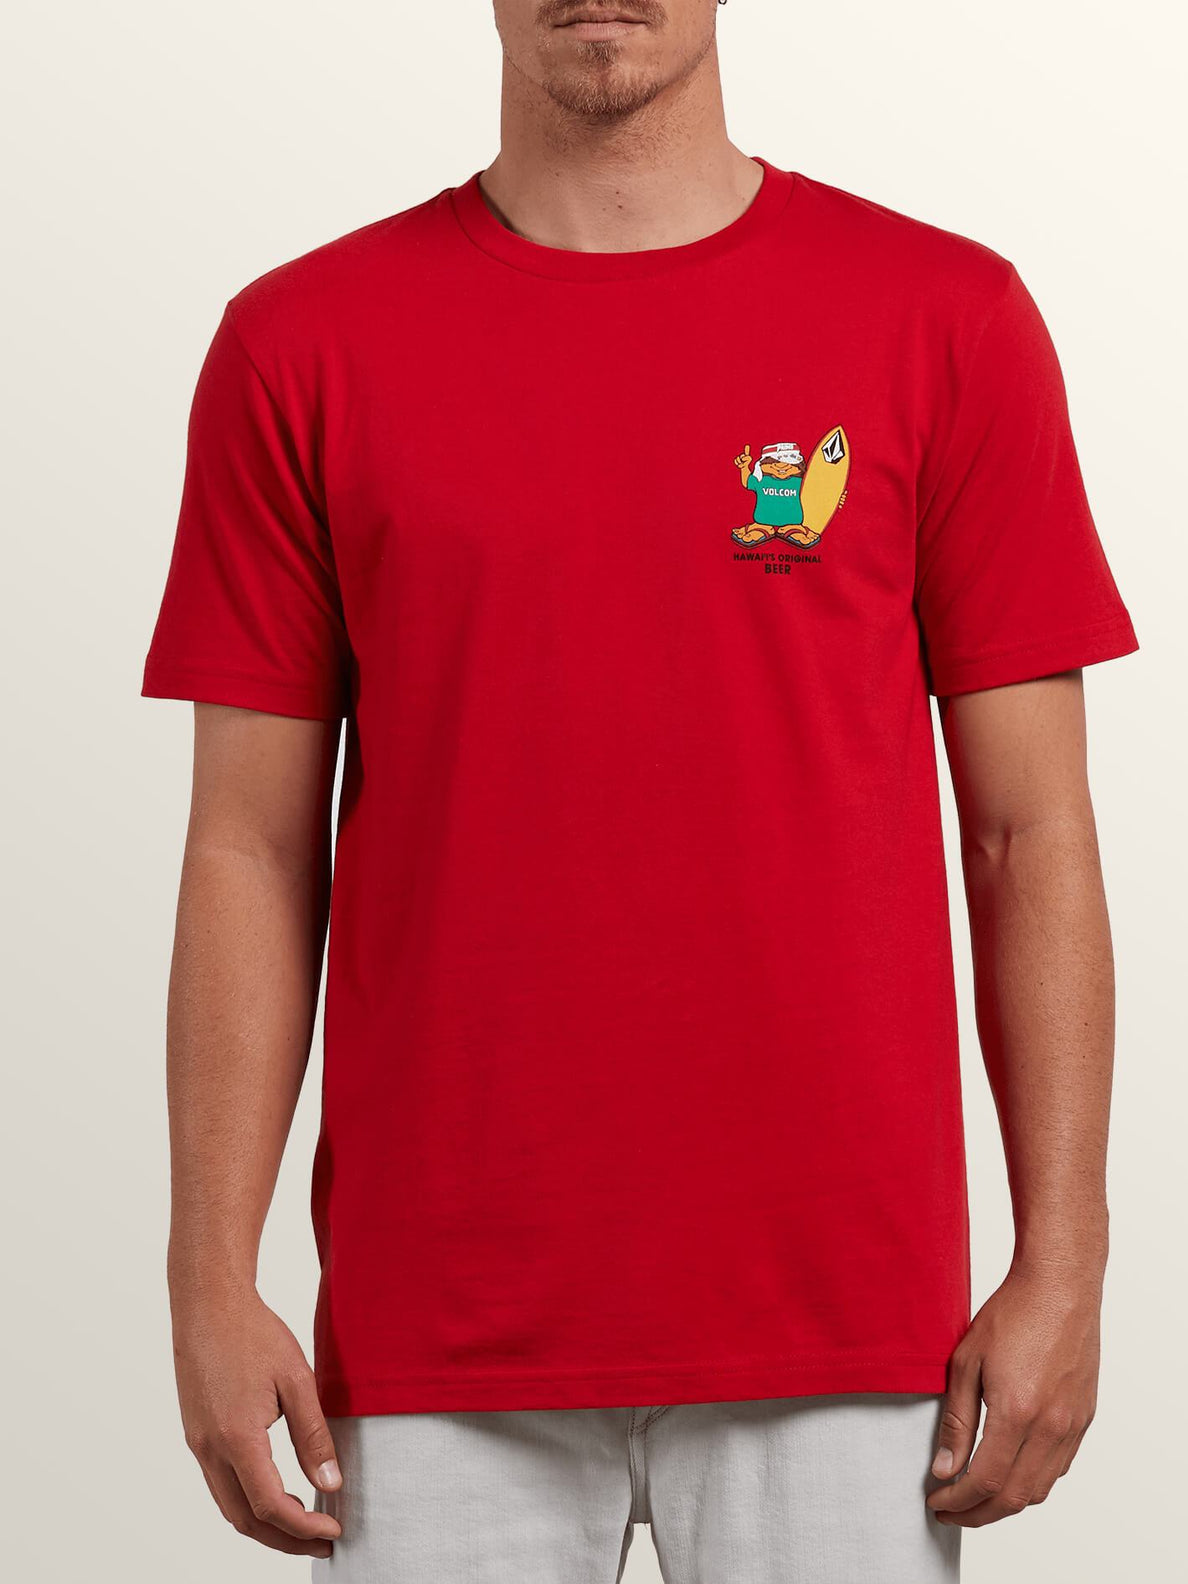 Primo Chance Short Sleeve Tee In Red, Front View